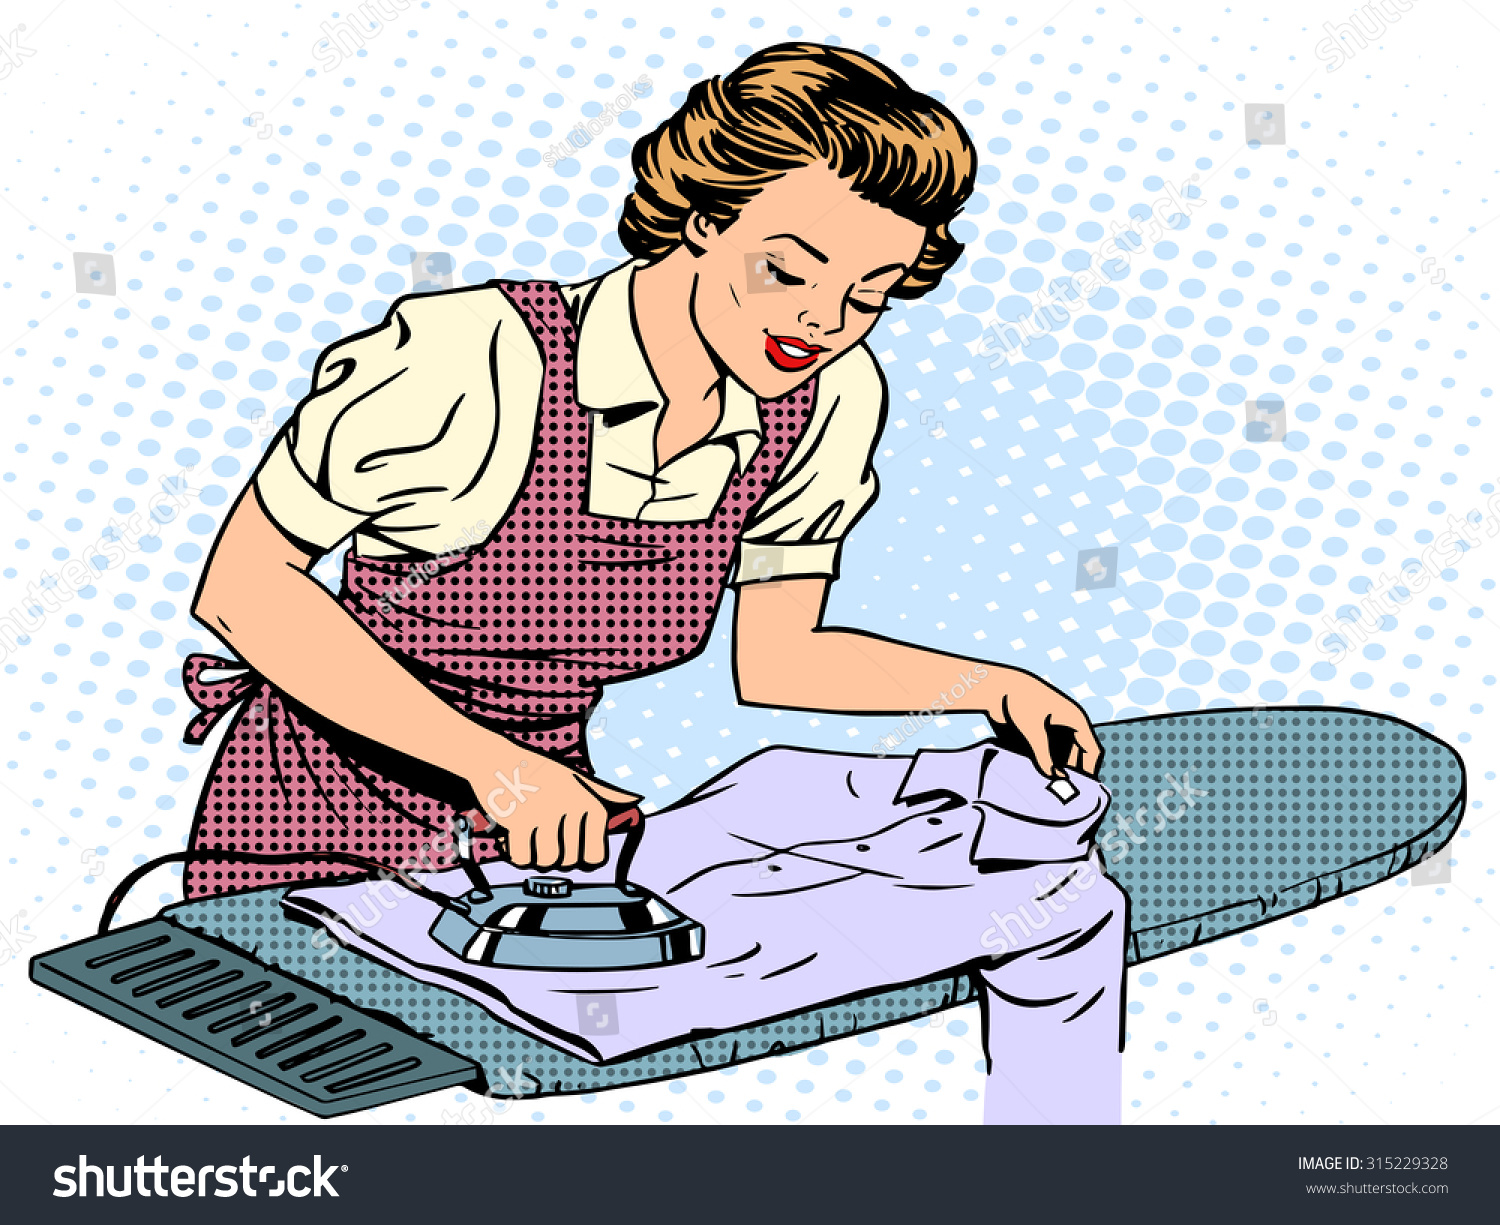 Woman stroking home clothes iron housewife stock vector for Style house styling iron